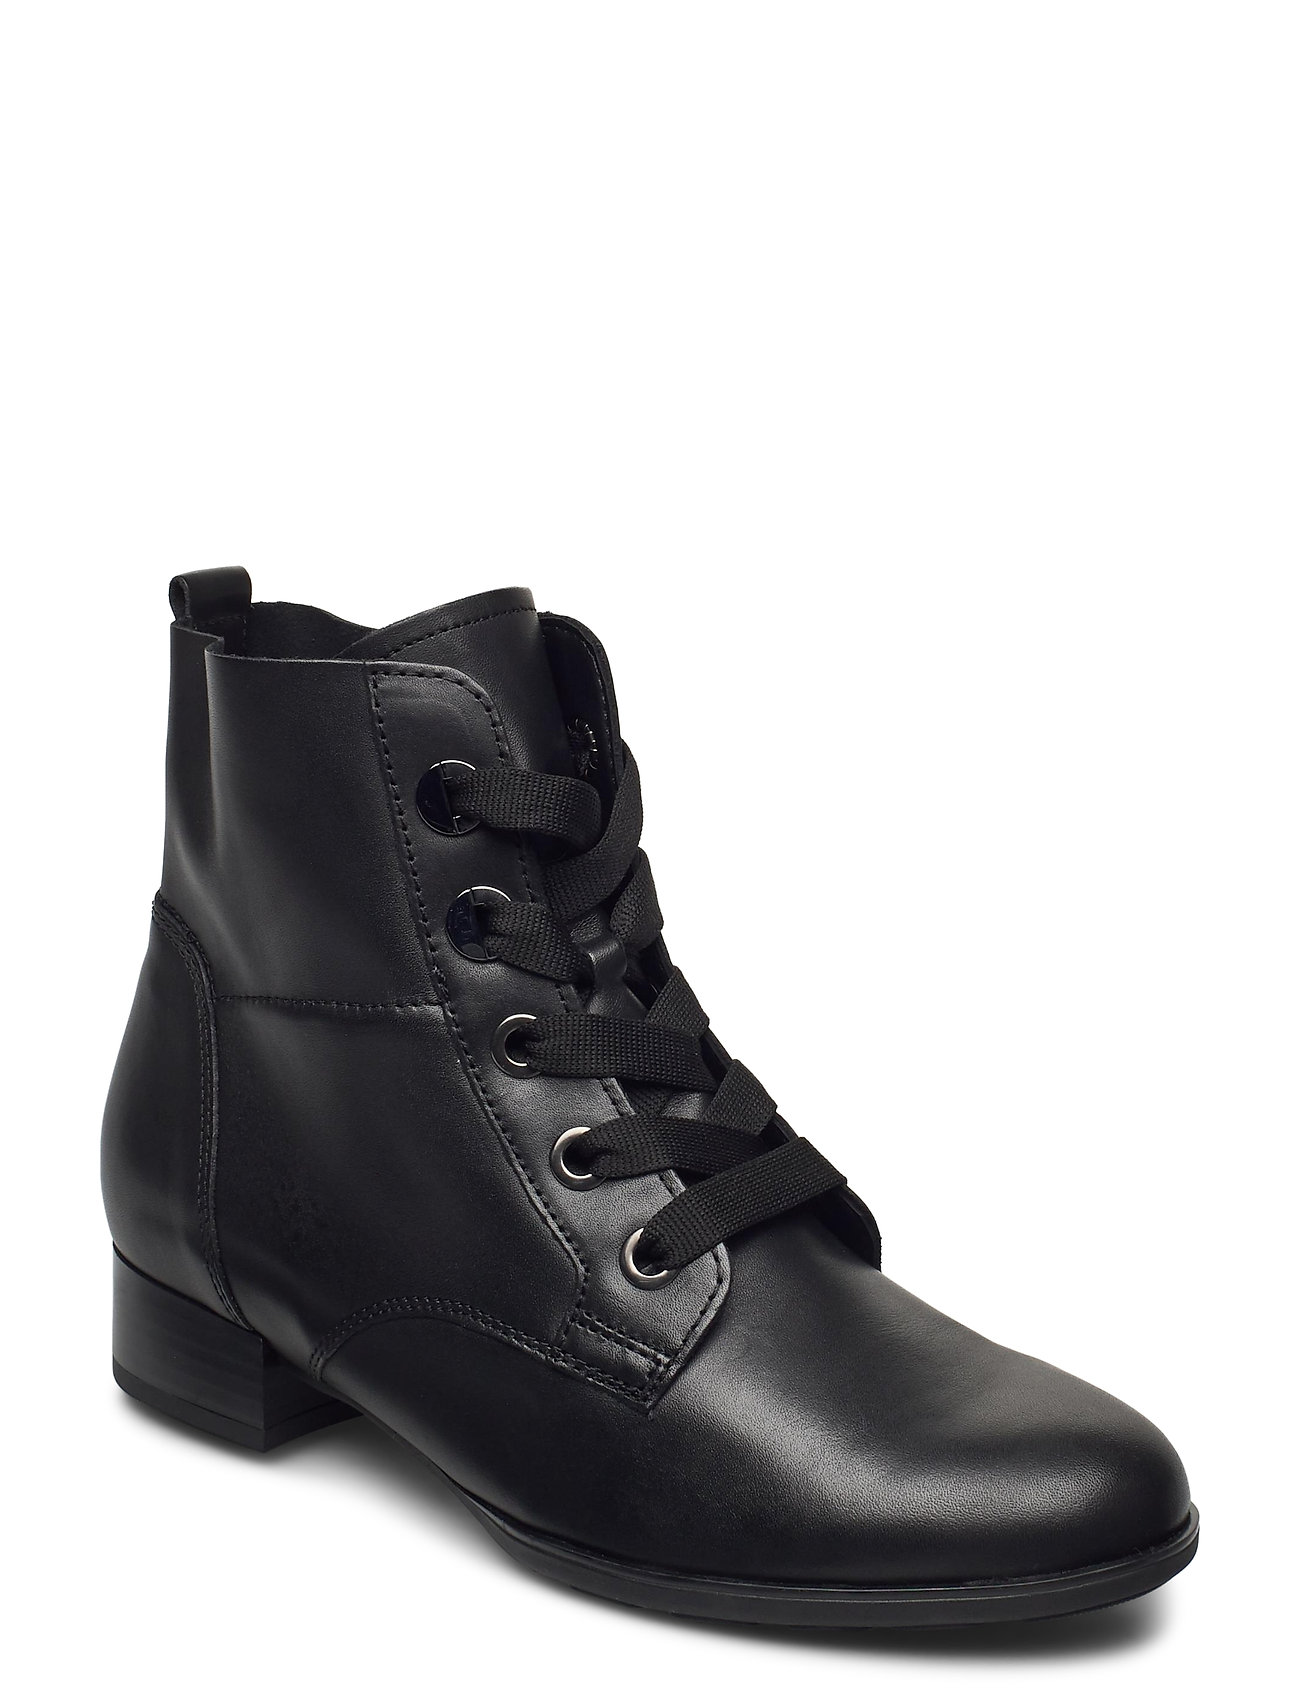 Image of Ankle Boot Shoes Boots Ankle Boots Ankle Boot - Heel Sort Gabor (3462700119)